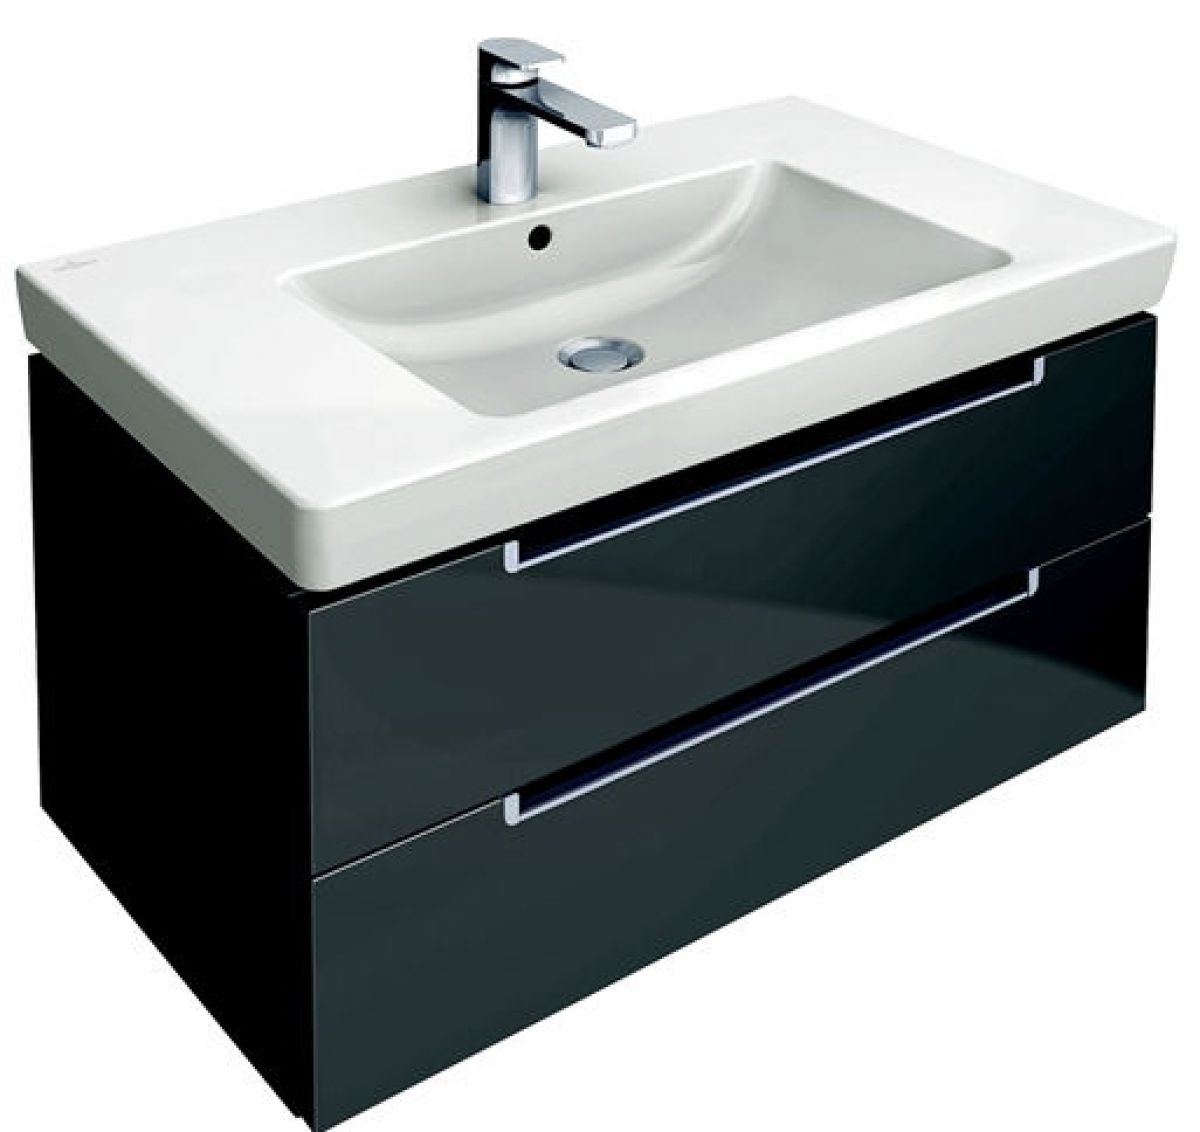 villeroy boch subway 2 0 vanity washbasin unit uk. Black Bedroom Furniture Sets. Home Design Ideas